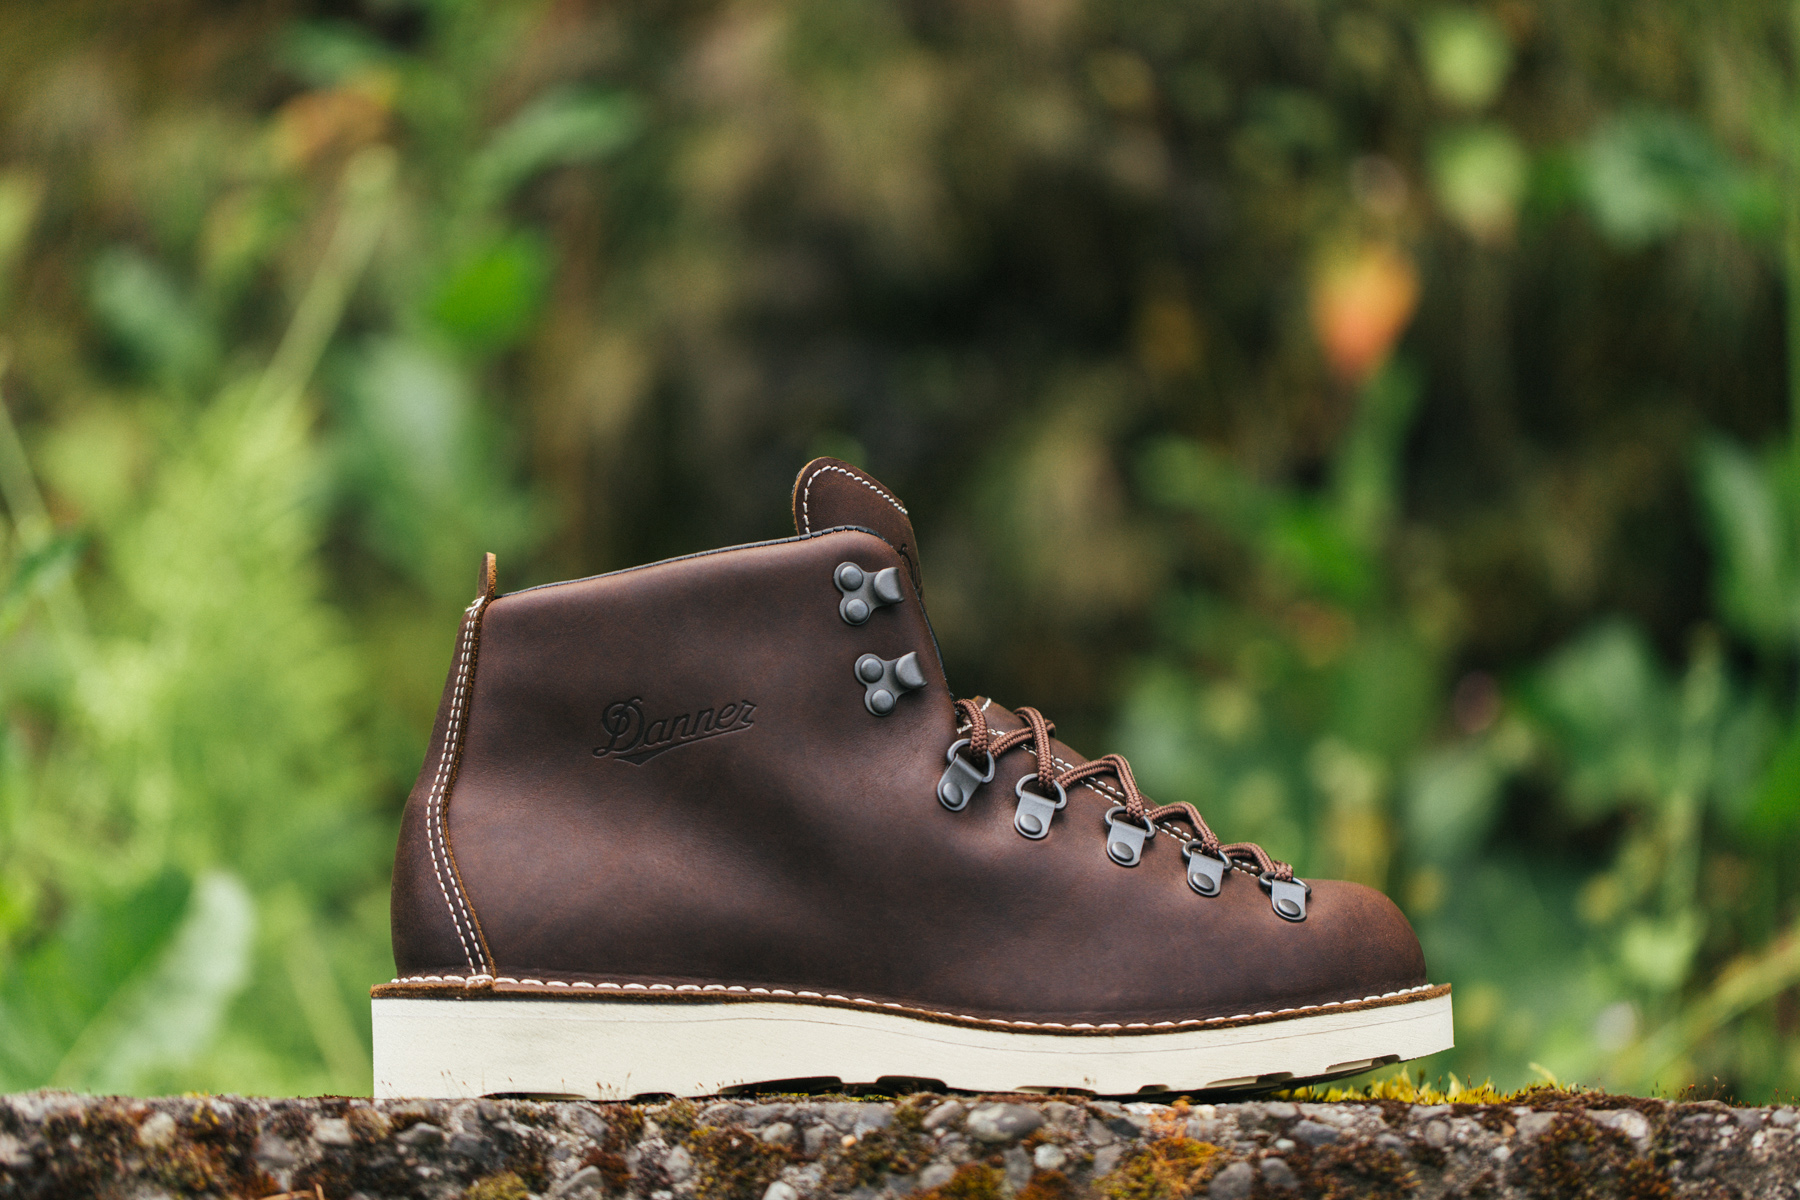 comme des garcons x danner 2013 fall mountain light boot